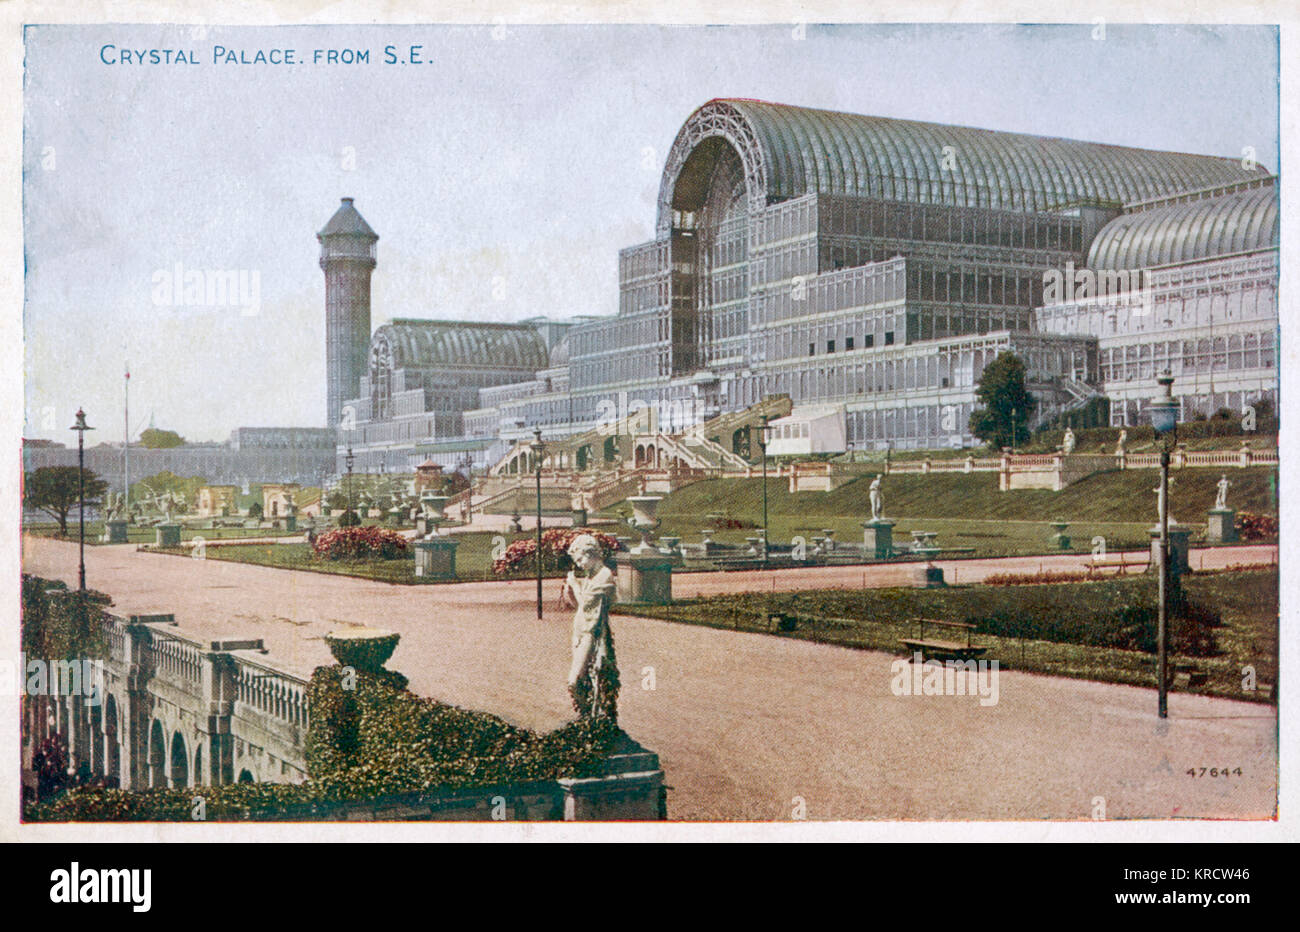 The Crystal Palace and grounds, looking from the south east Date: Circa 1900 - Stock Image